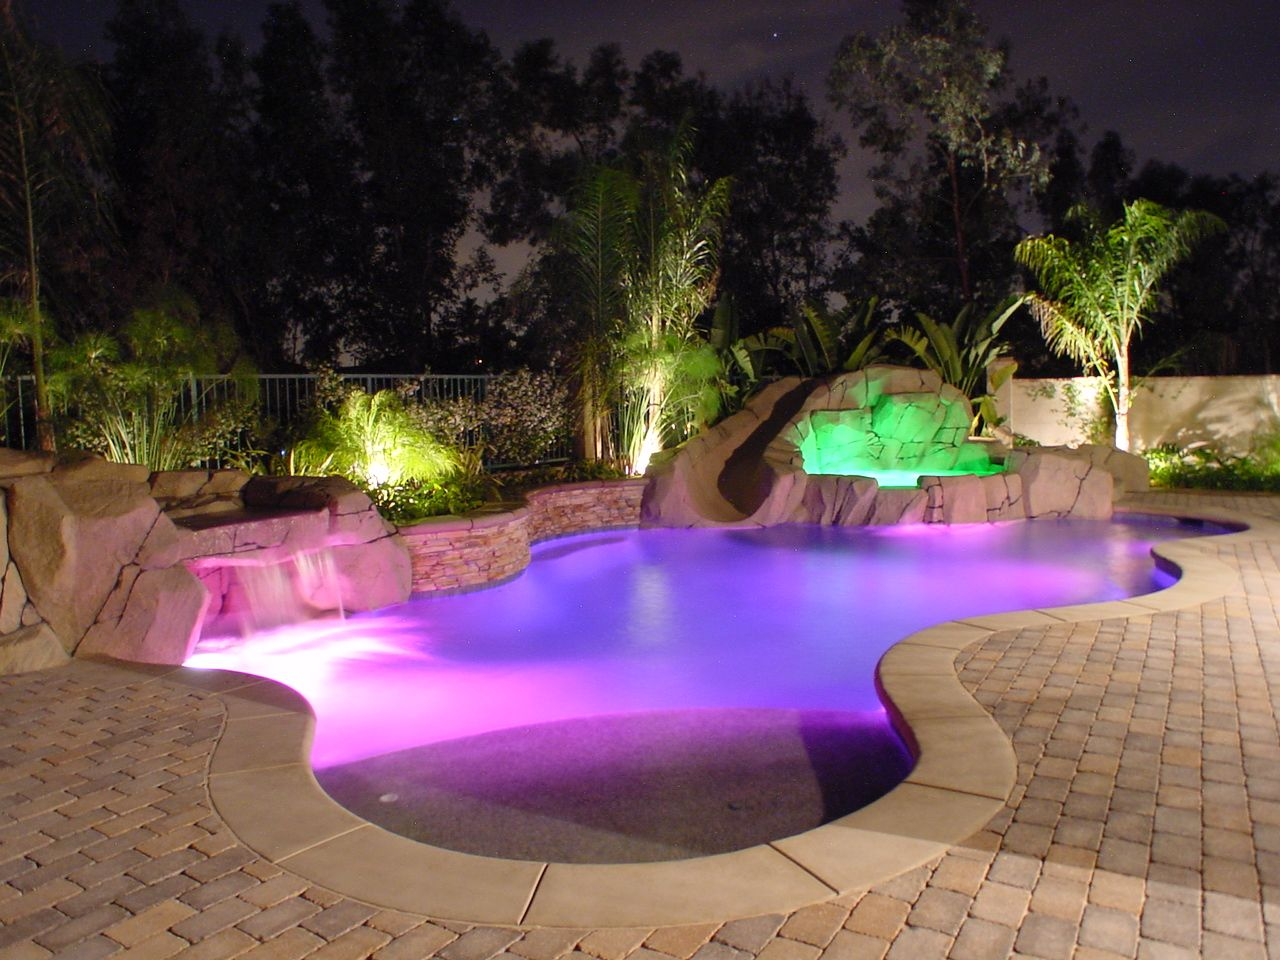 beach entry pools design and music features for your custom swimming pool - Custom Swimming Pool Designs